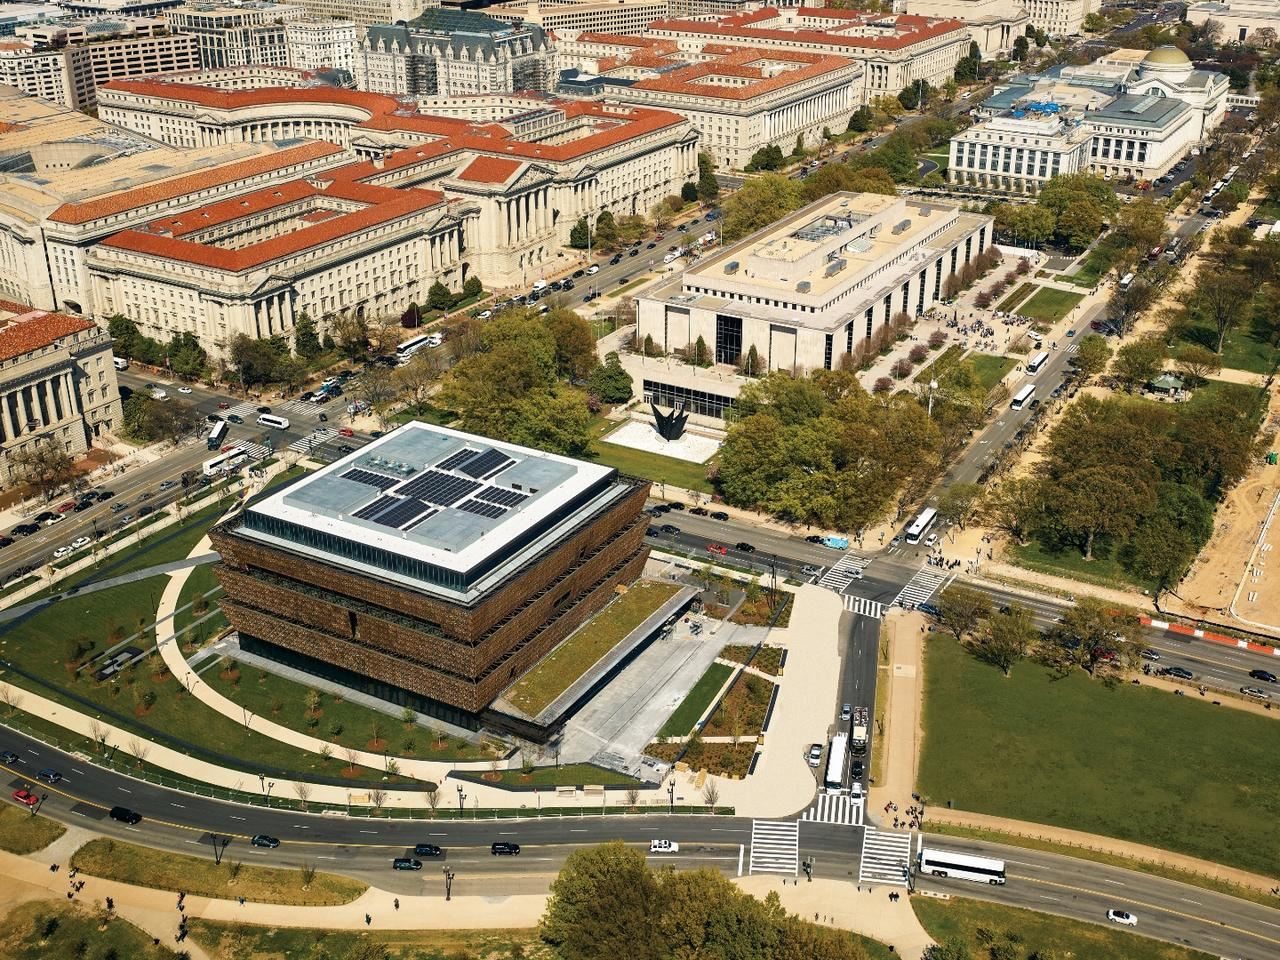 The National Museum of African American History and Culture was designedby Adjaye Associates alongside The Freelon Group, Davis Brody Bond, and SmithGroupJJR